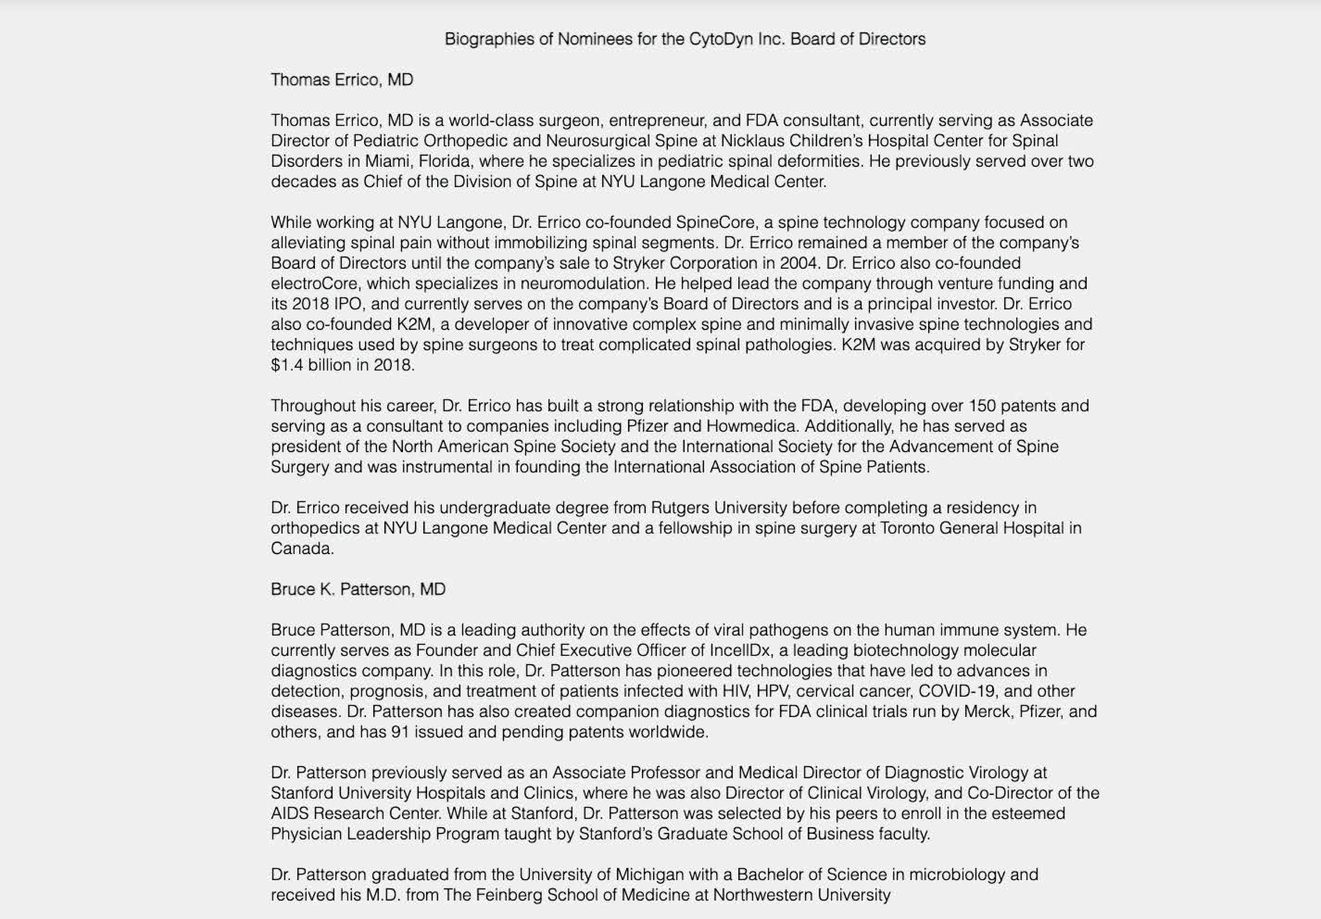 123-2-BA_NEWS RELEASES_PAGE006.JPG